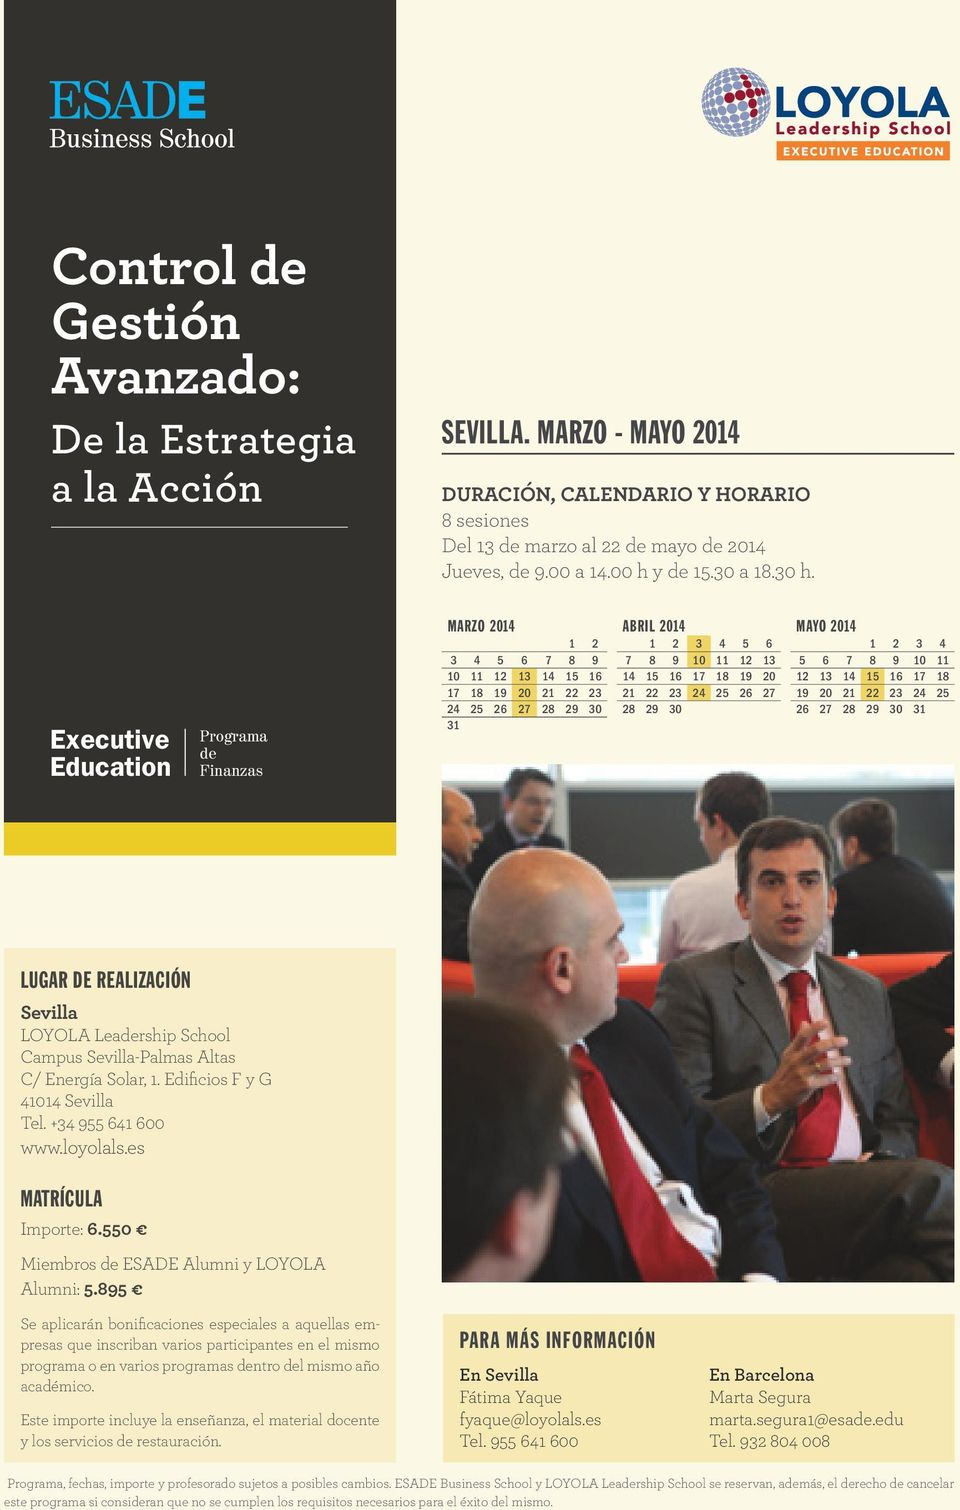 Executive Education Programa de Finanzas MARZO 2014 1 2 3 4 5 6 7 8 9 10 11 12 13 14 15 16 17 18 19 20 21 22 23 24 25 26 27 28 29 30 31 ABRIL 2014 1 2 3 4 5 6 7 8 9 10 11 12 13 14 15 16 17 18 19 20